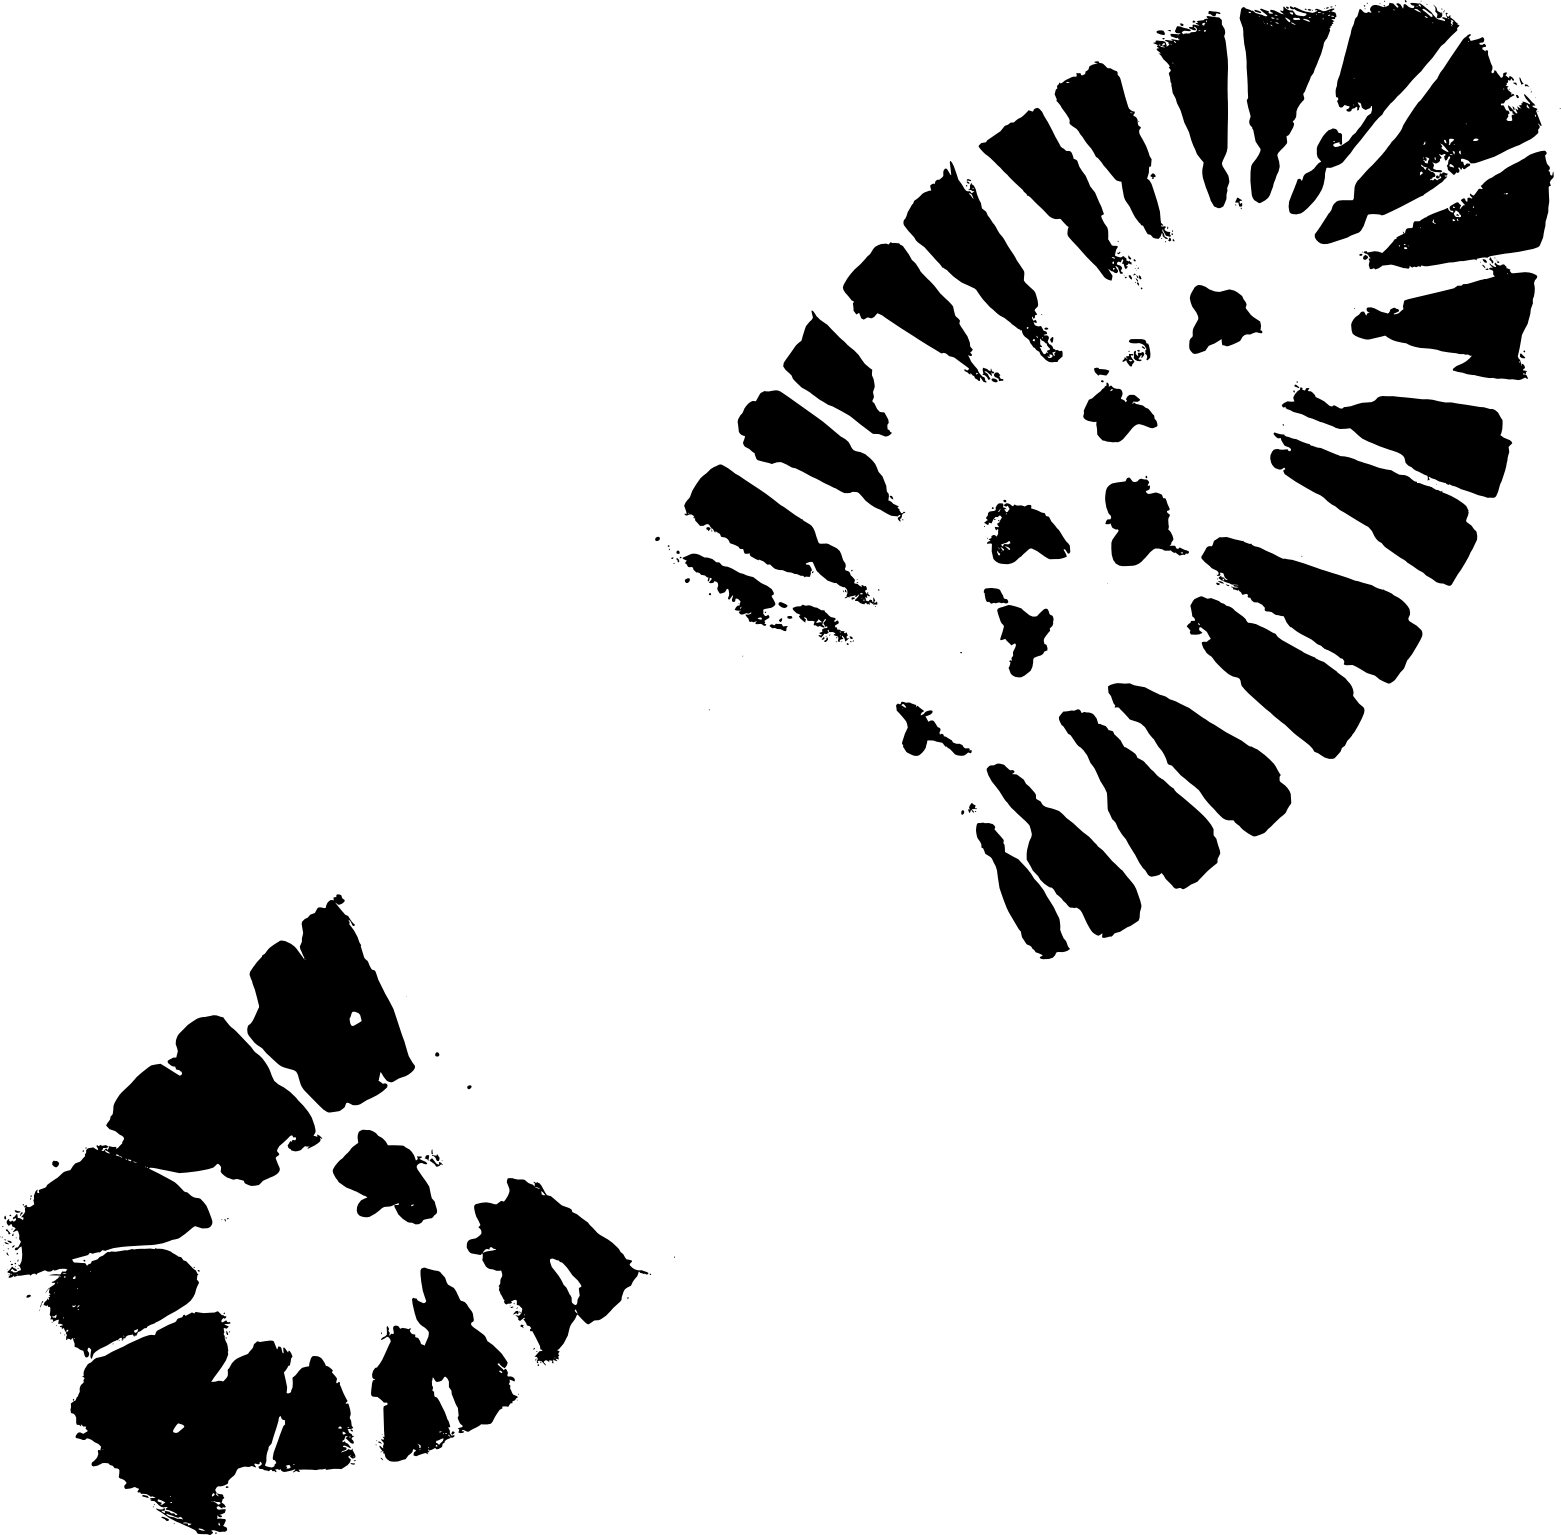 Giant footprint png. Footprints images transparent free